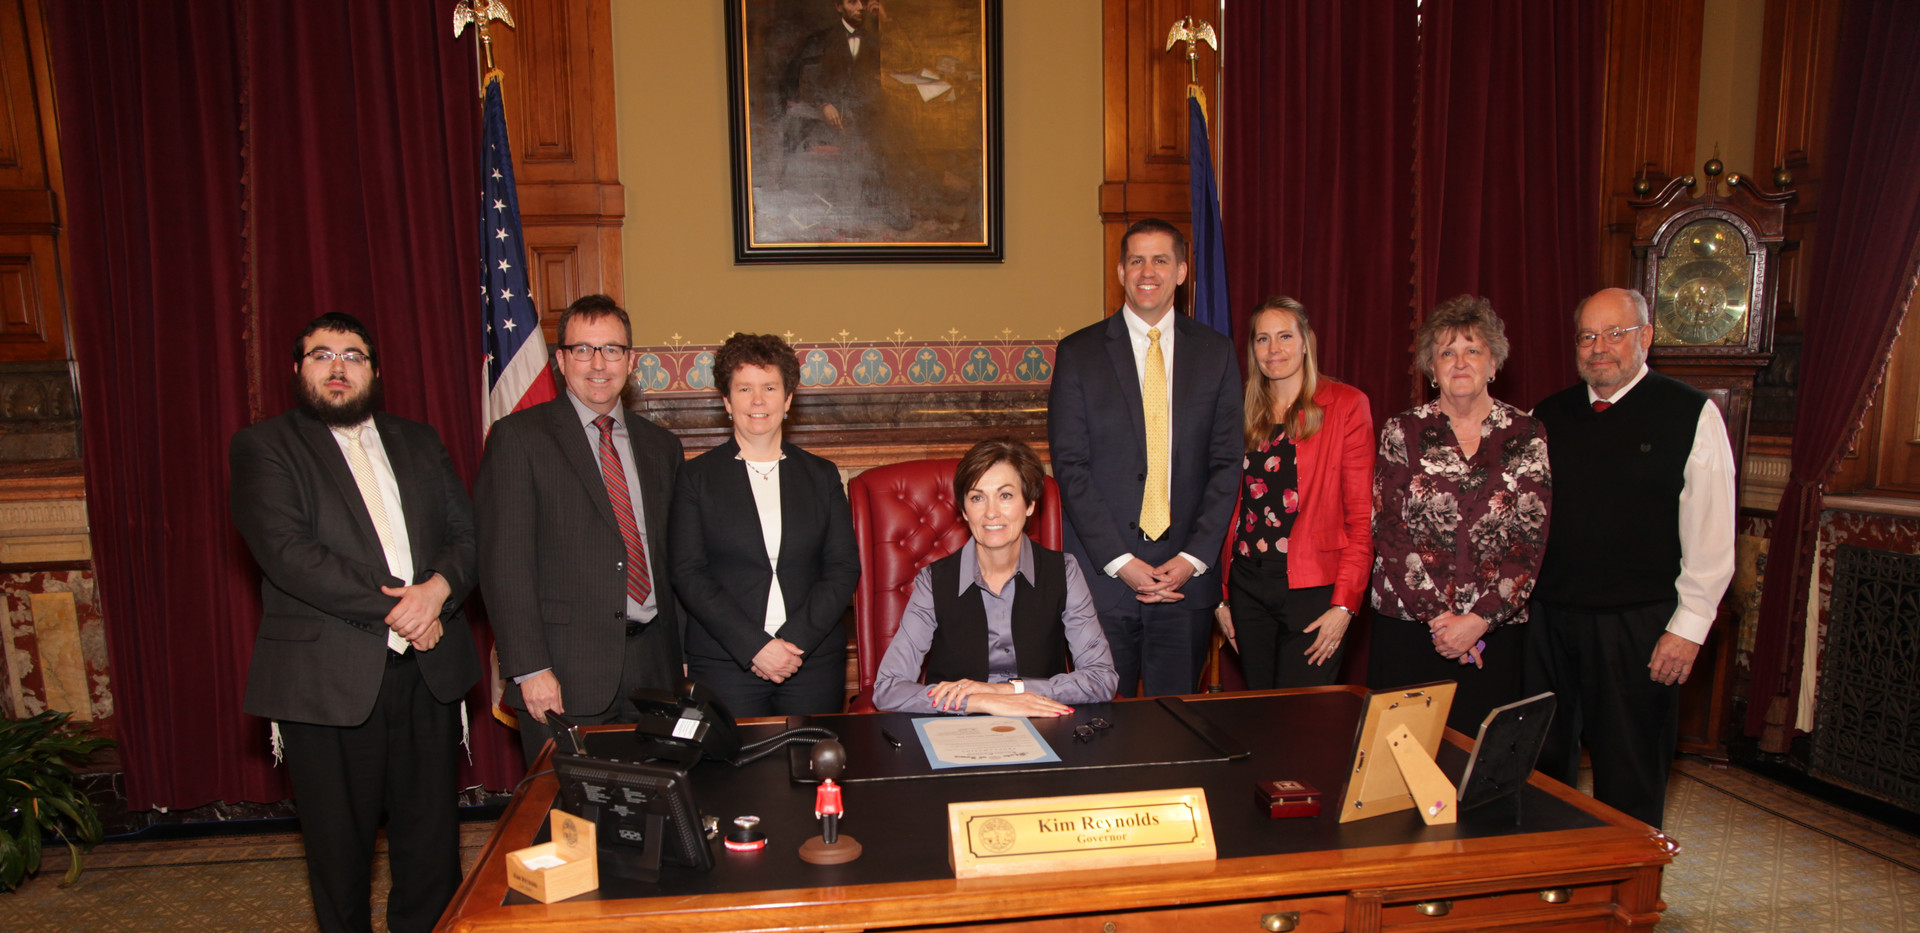 Governor Kim Reynolds signs Proclamation